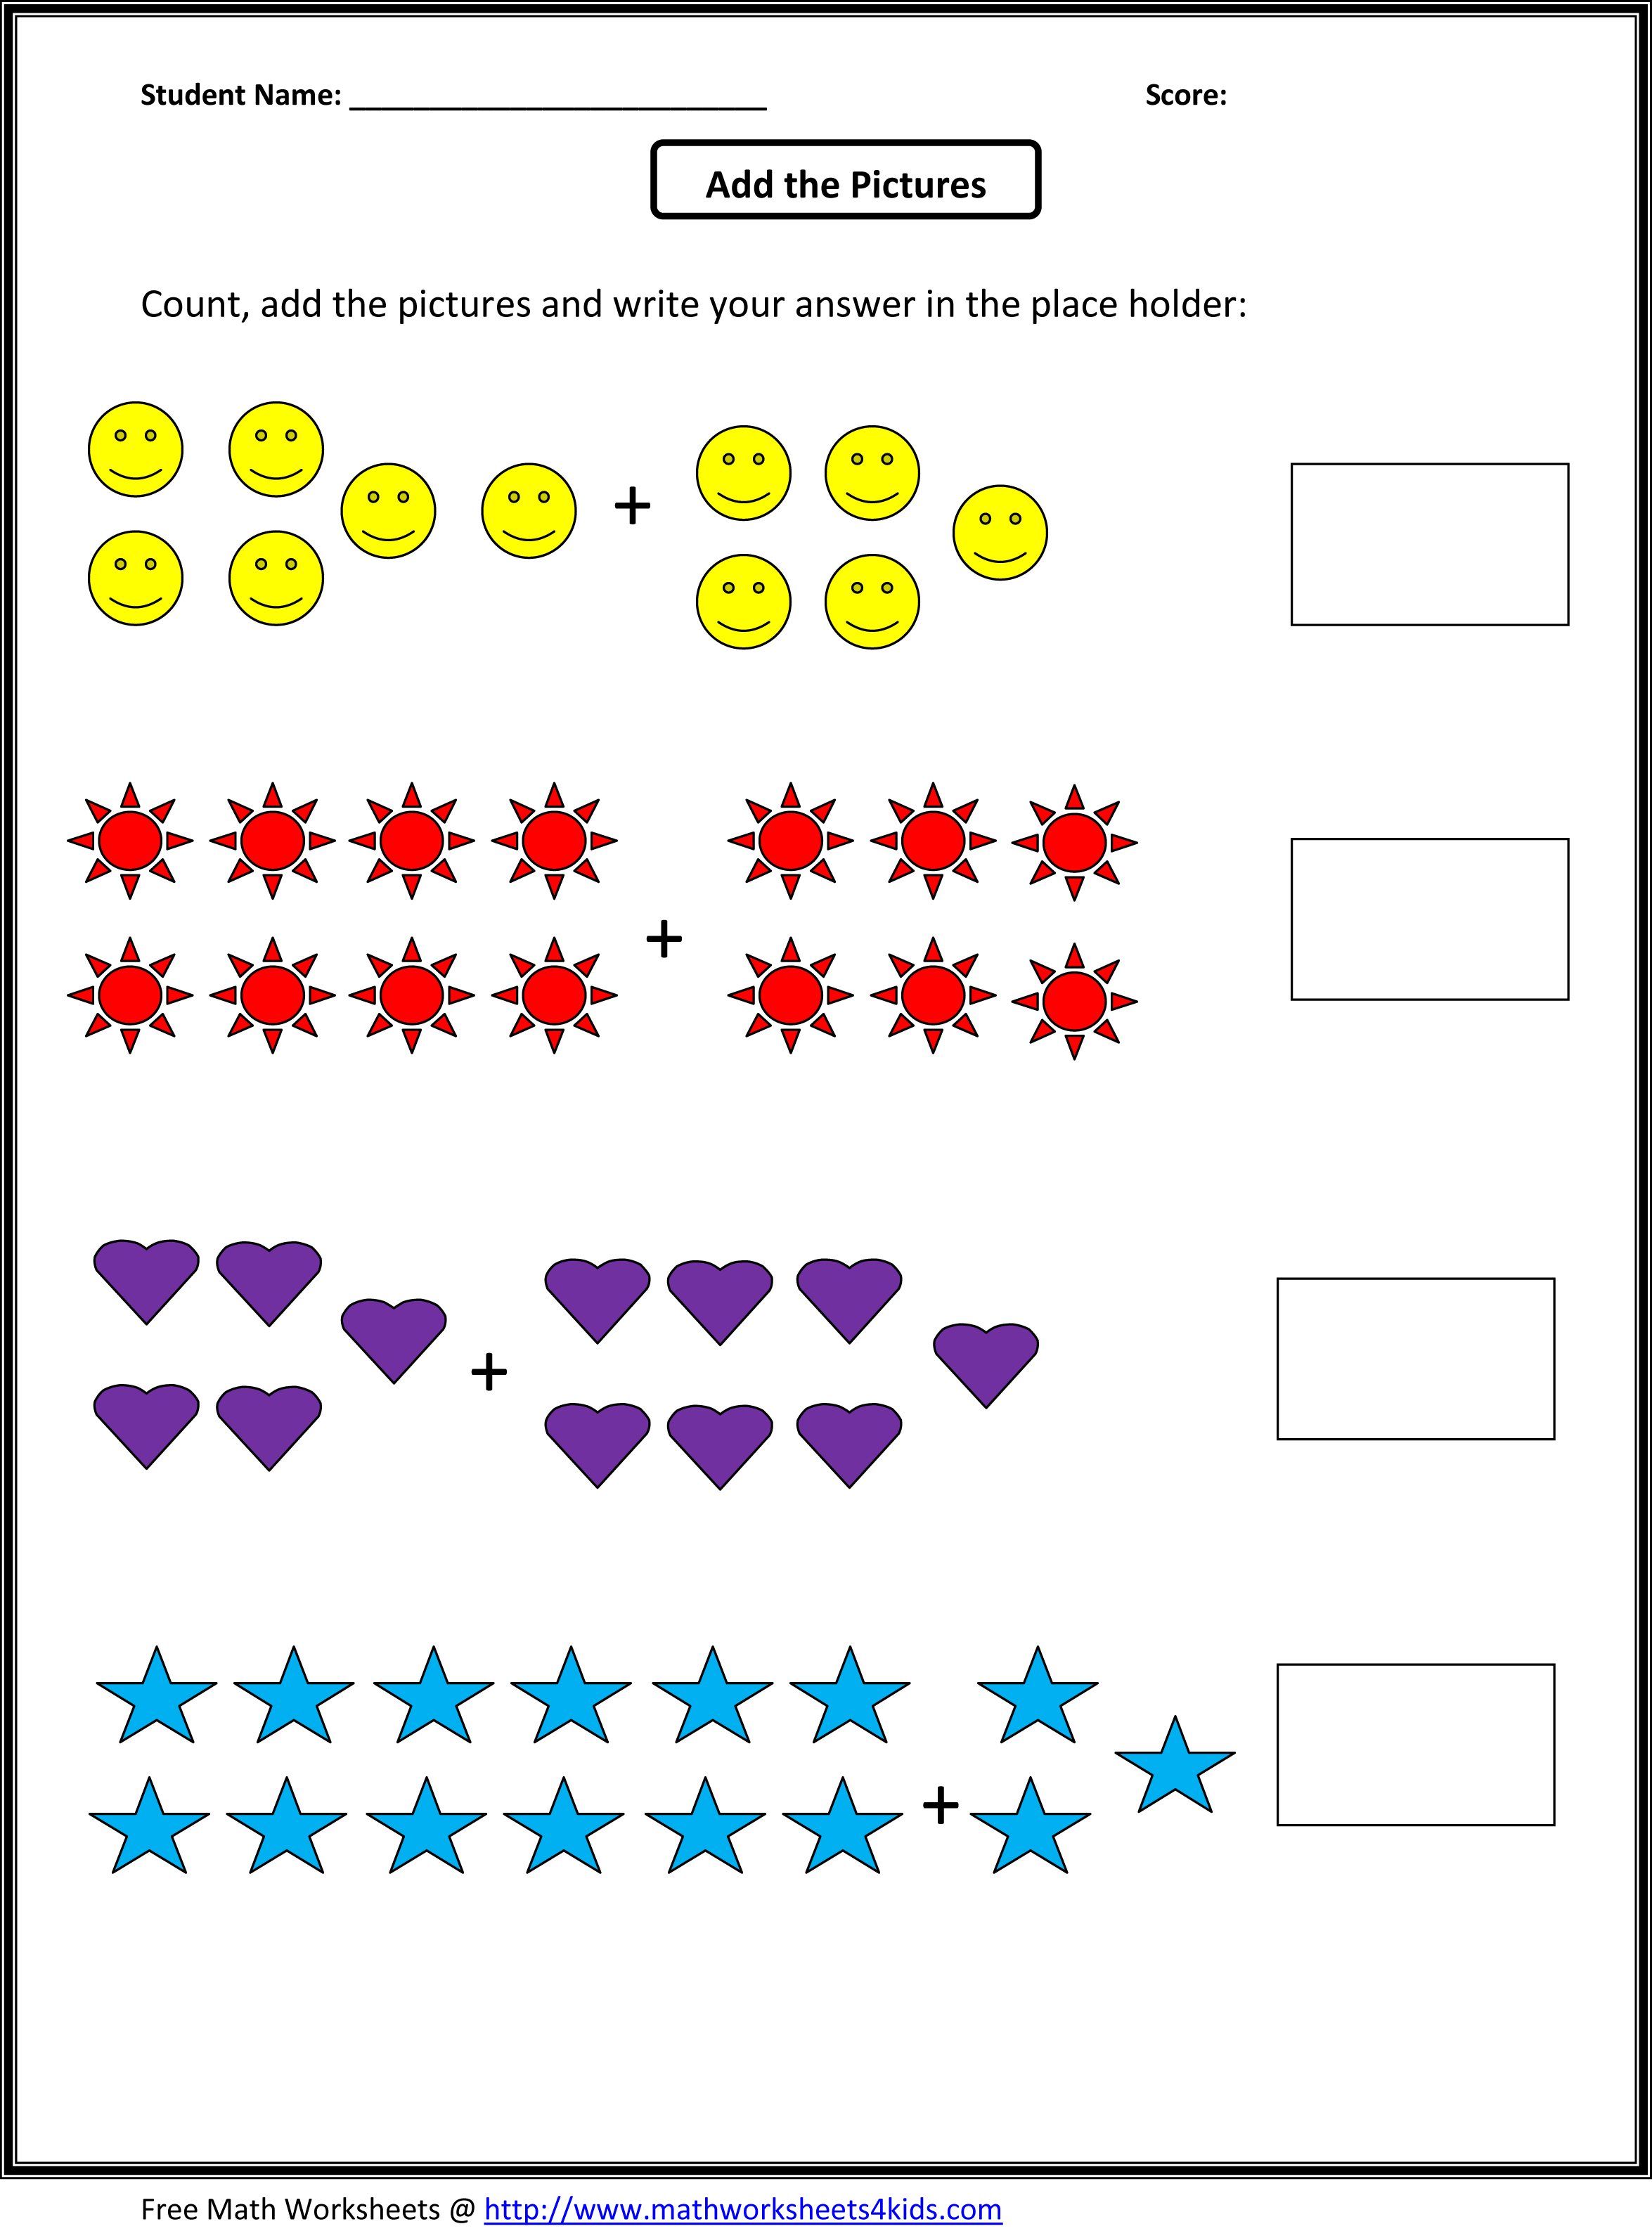 1st Math Worksheets First Grade Math Worksheets 800 X 1035 28 KB – 1st Grade Addition Worksheet